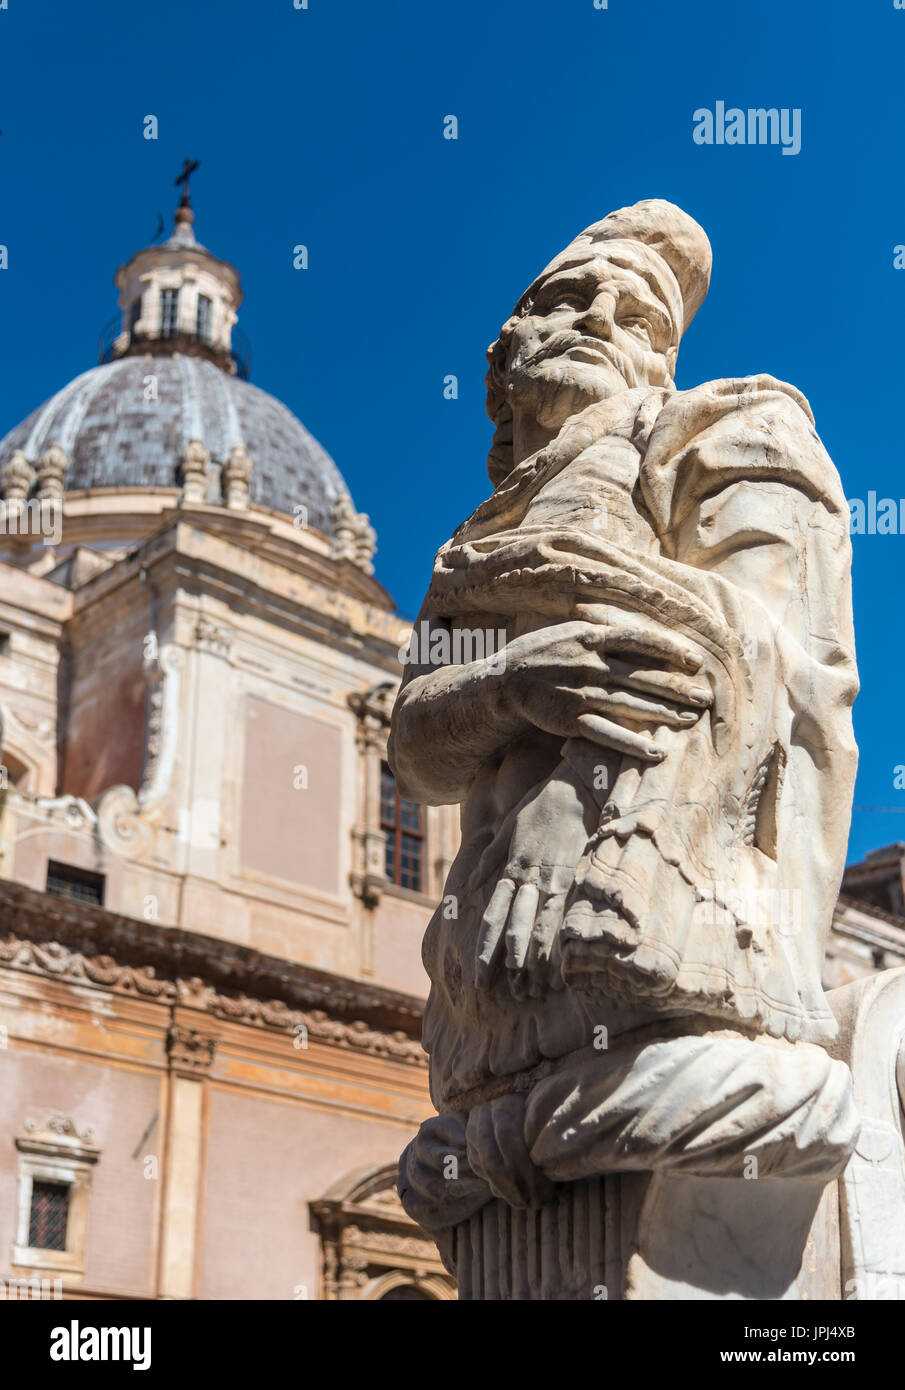 Marble sculpture on the 16th century Florentine fountain in Piazza Pretoria, central Palermo, Sicily, Italy. - Stock Image